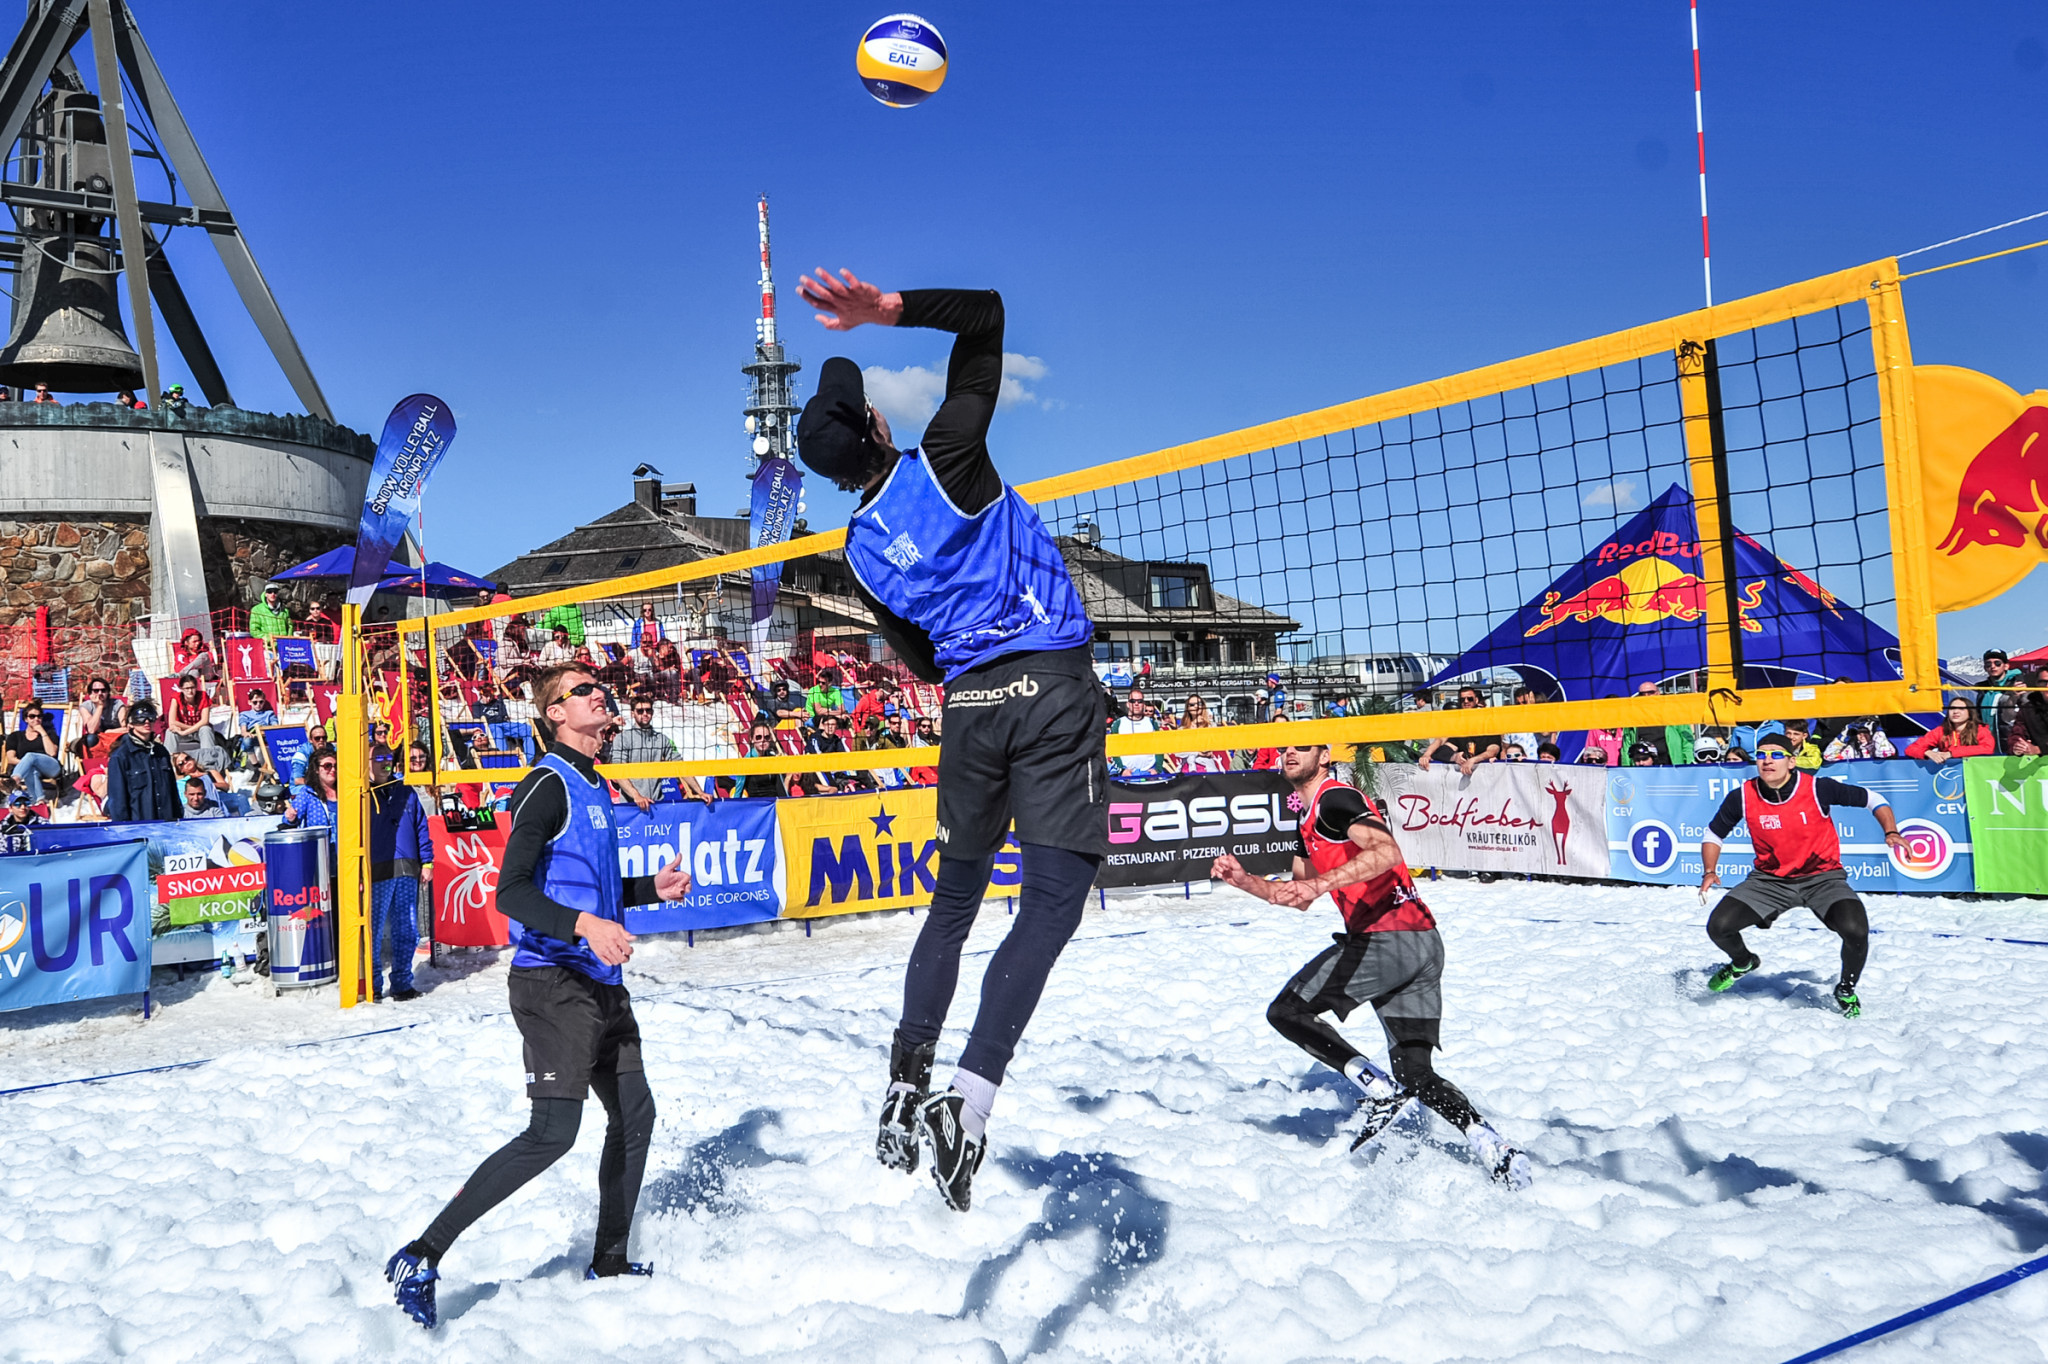 The FIVB held their first Snow Volleyball World Tour in 2019 ©FIVB